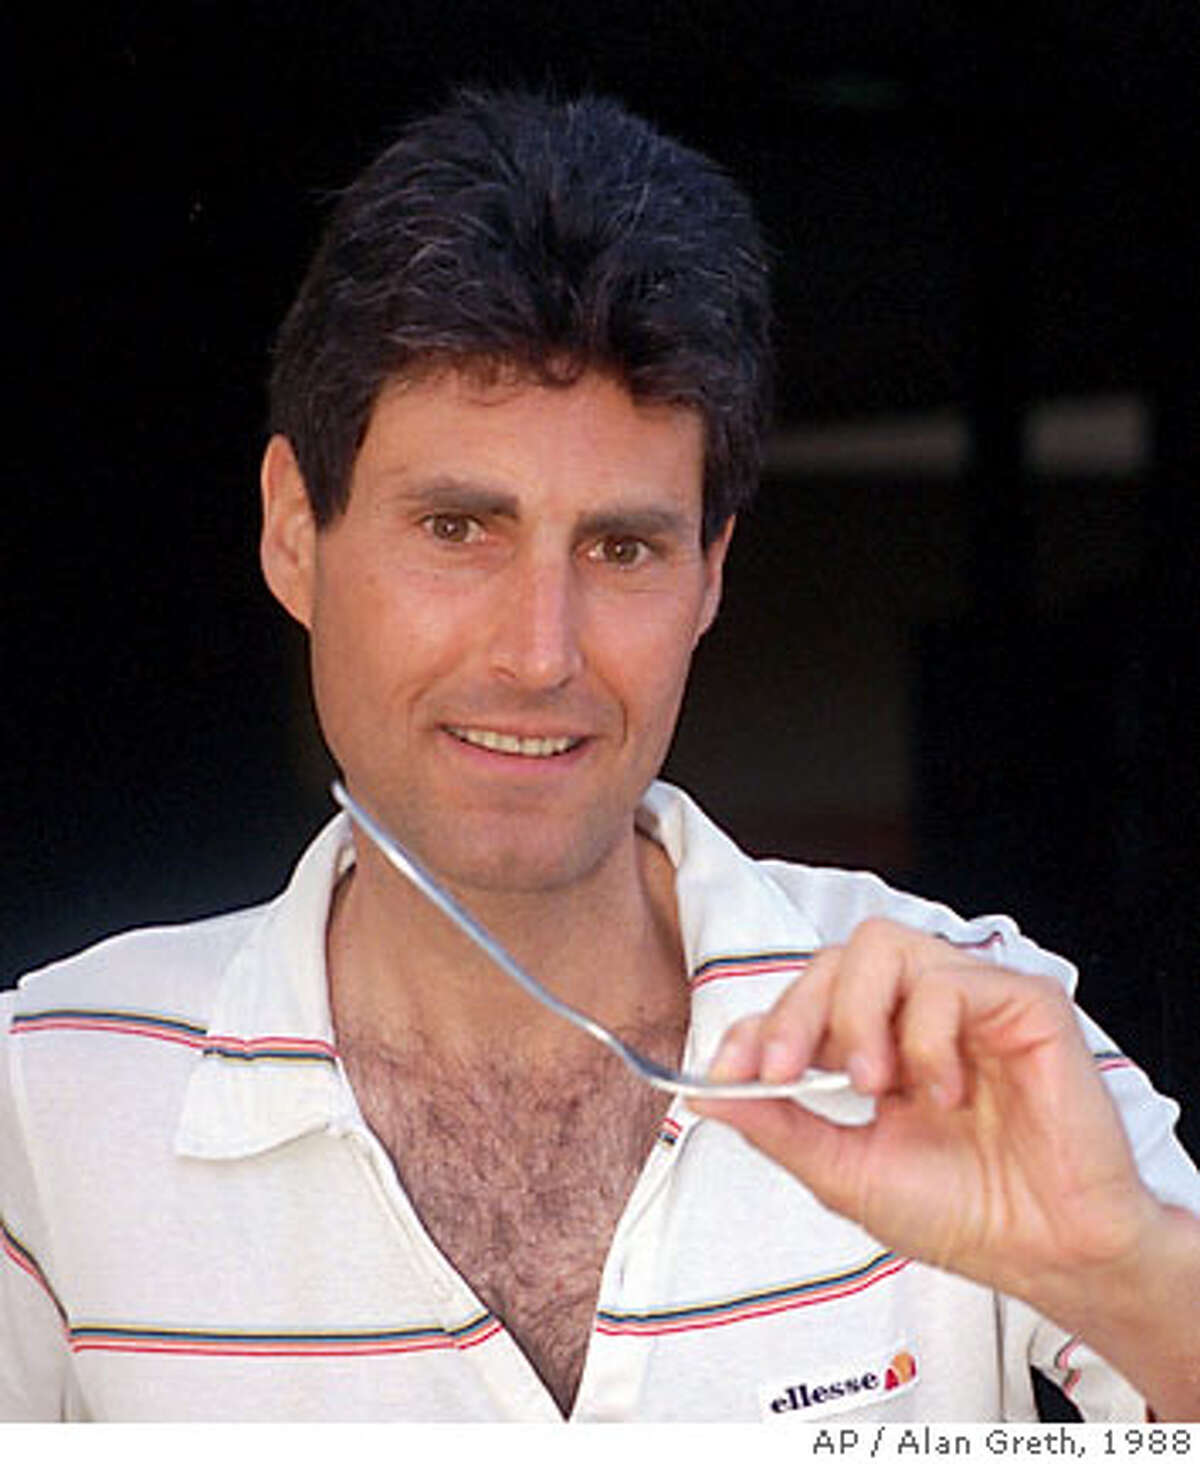 """FILE--Author and psychic phenomena expert , shown in this May 14, 1988 file photo, displays the bent fork he was observed causing to bend while holding in only one hand in Pasadena, Calif. Geller's powers failed him Friday, Dec. 9, 1994 when it came to persuading a court to lift a $149, 000 fine. Geller's lawyer, Richard Winelander said Geller's original lawyer was responsible for missing deadlines and failing to repond to the organization that was suing. """"He's taking the brunt of the burden for the sins of his attorney,"""" said Winelander. (AP Photo/Alan Greth) MAY 14, 1988 FILE PHOTO ALSO RAN: 10/22/1999 (CF, CC1)"""